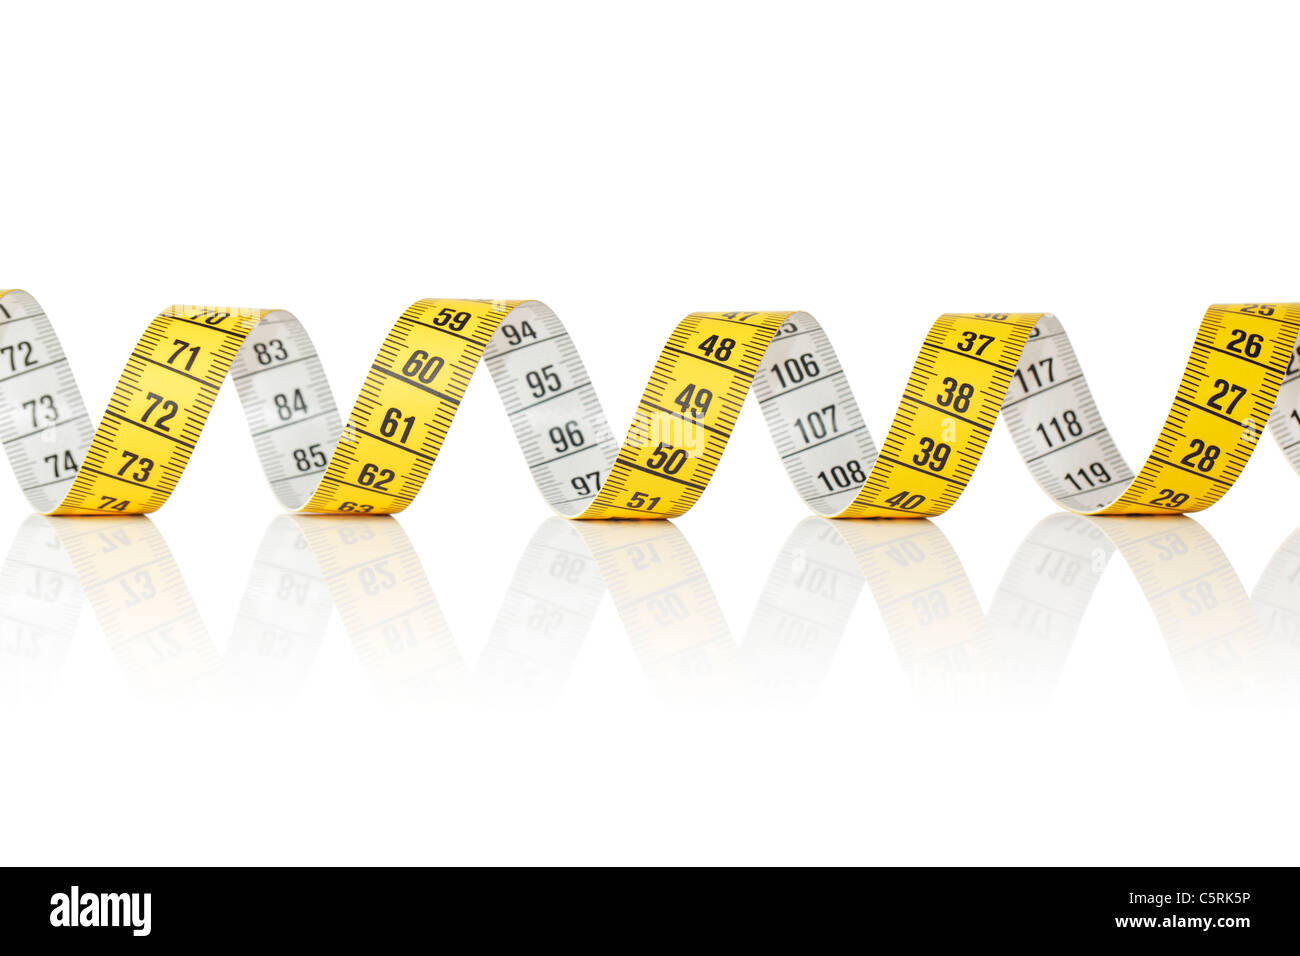 Yellow and white metric tape measure on white reflecting background Stock Photo